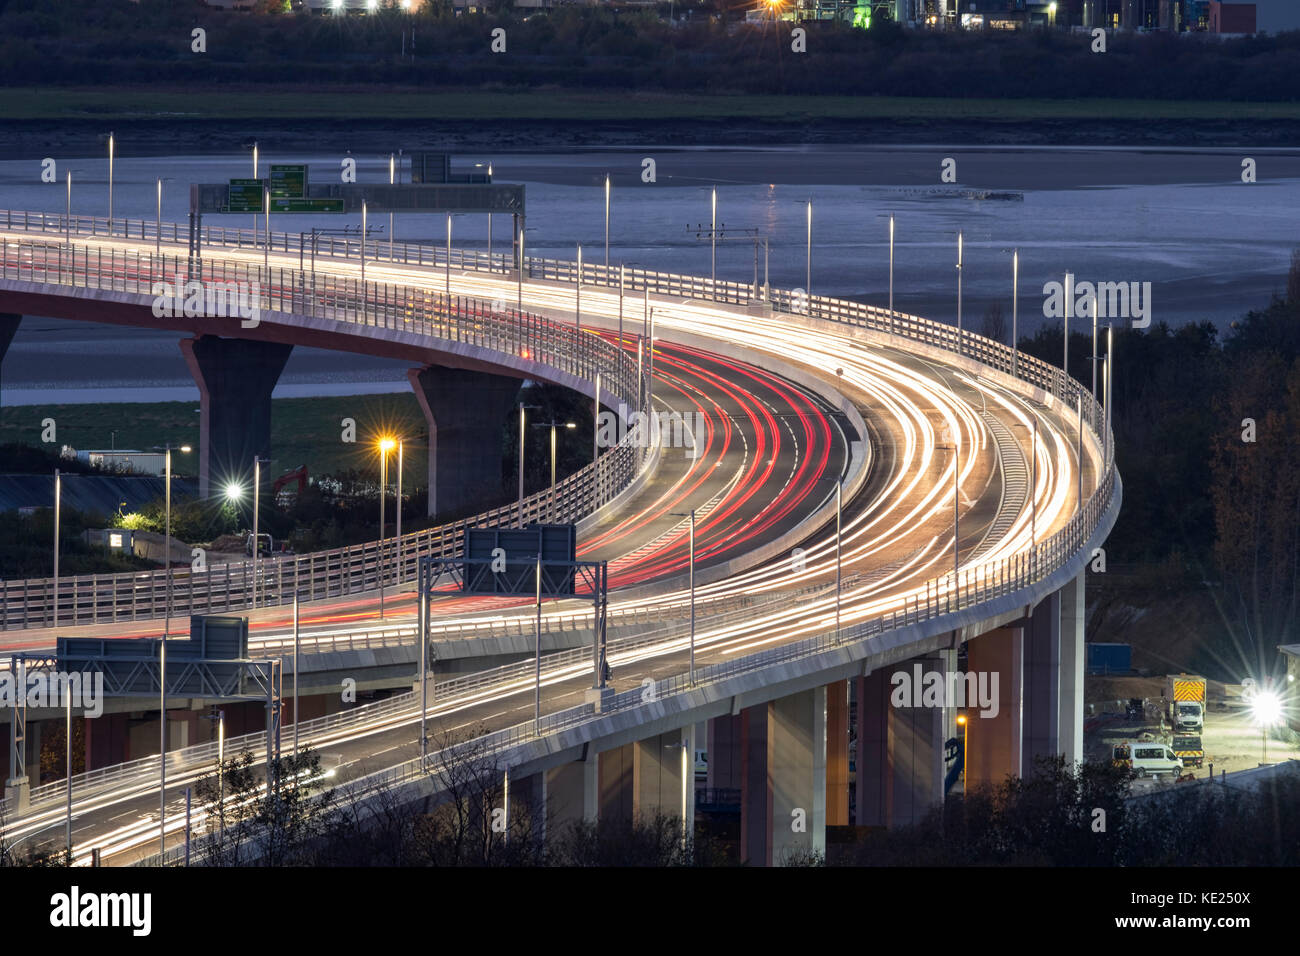 Runcorn Entry and Exit Ramp of the Mersey Gateway Bridge over the Mersey Estuary at night, Runcorn, Cheshire, England, - Stock Image